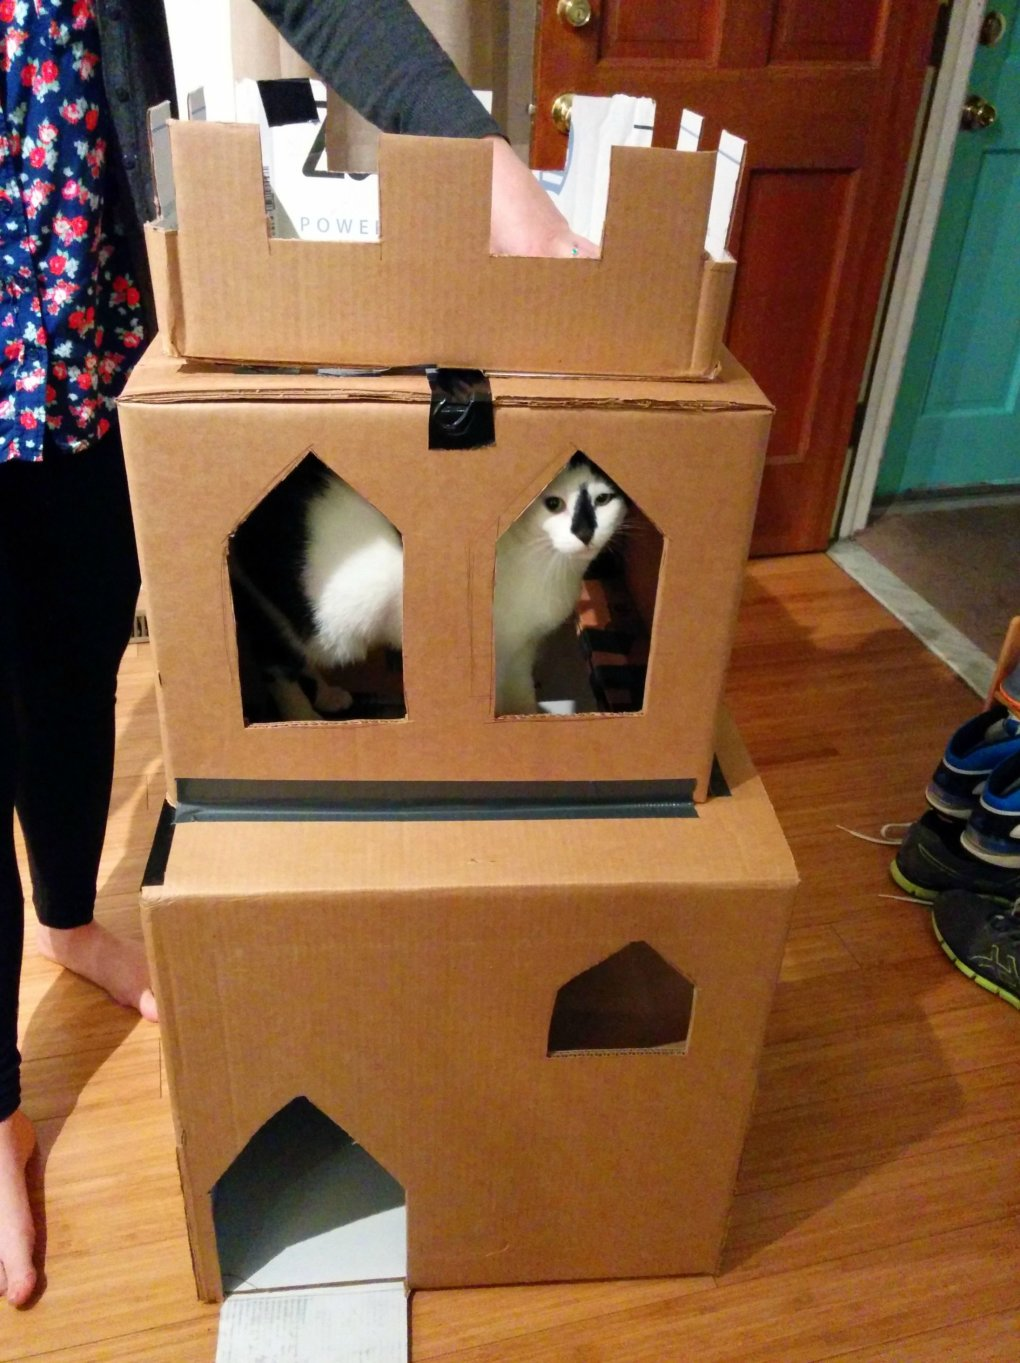 39l82as - why don't we build cardboard castle to our cats? this is how to do it.